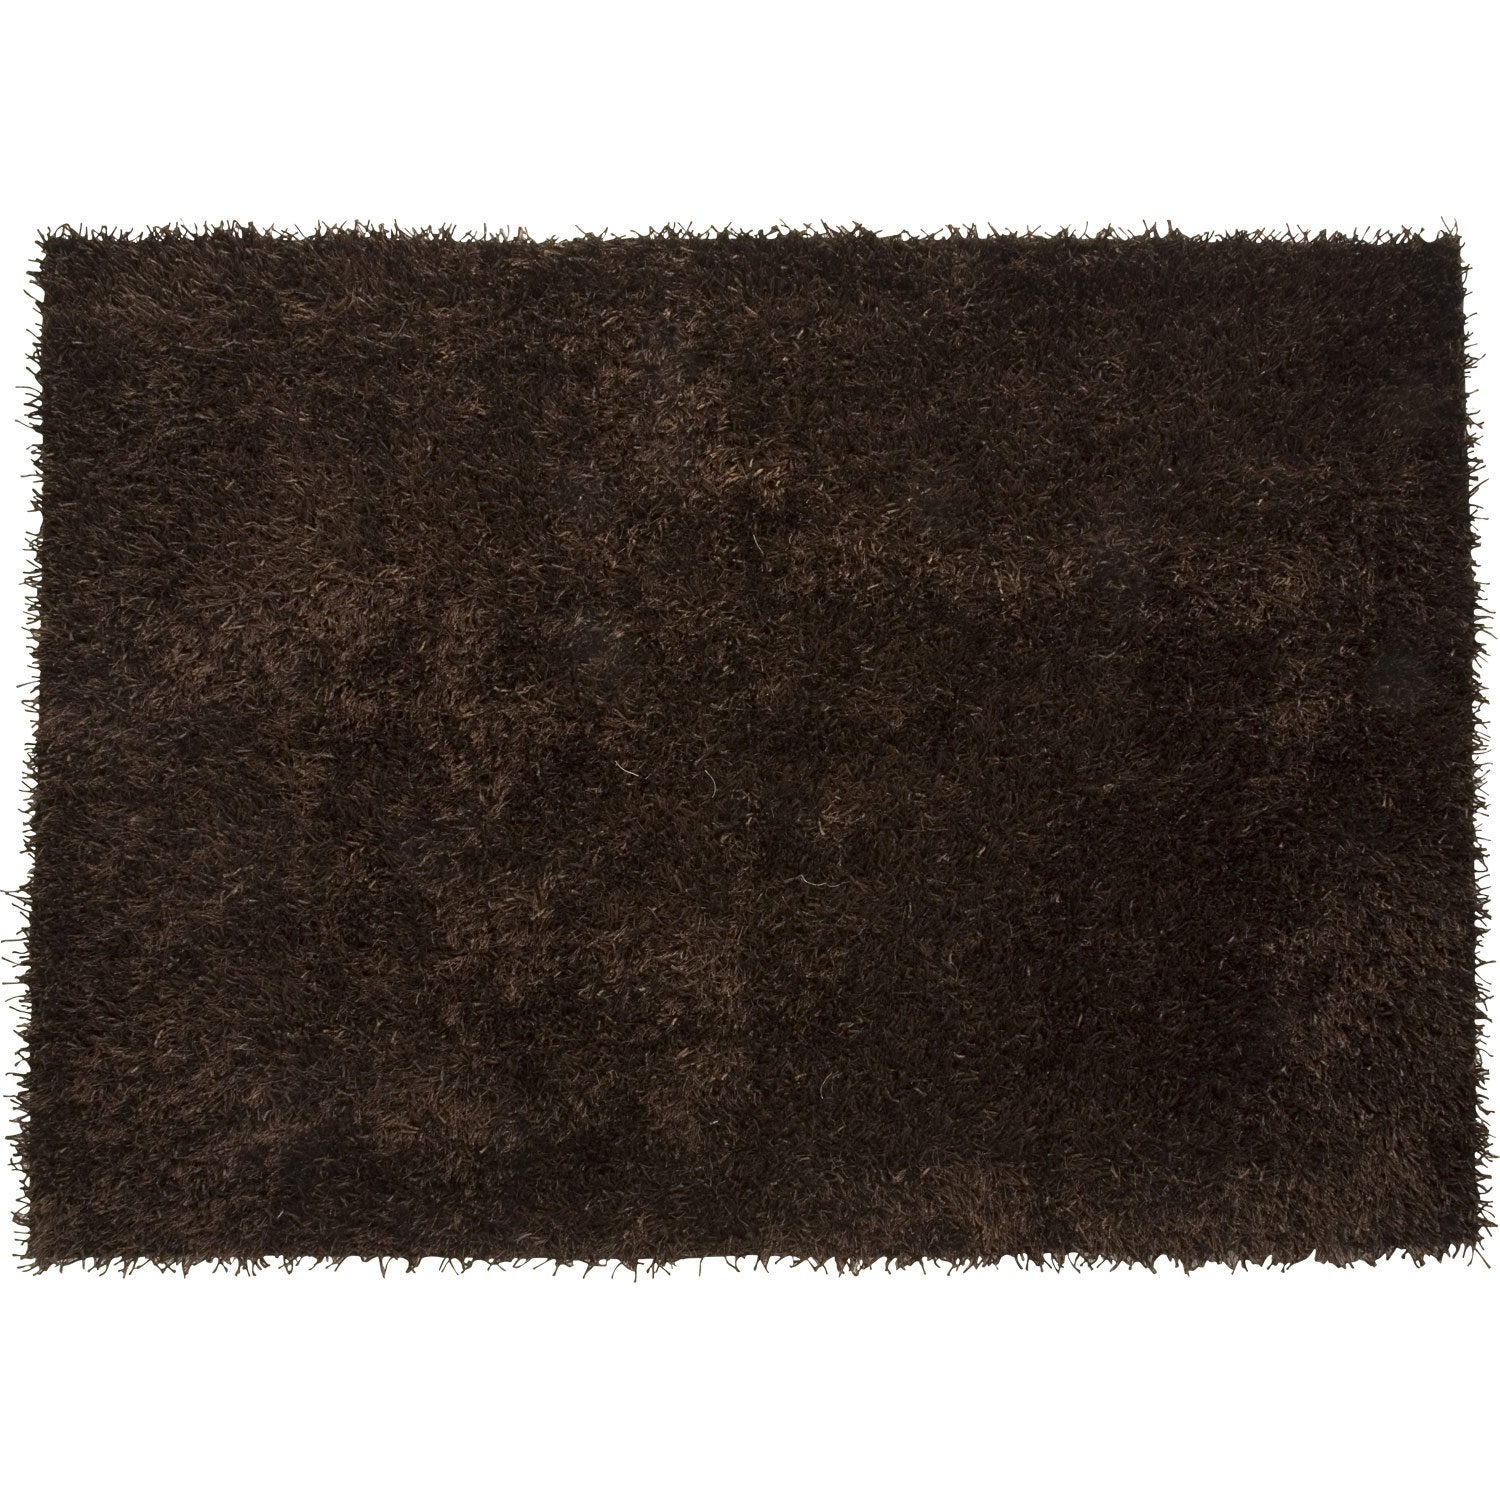 tapis shaggy lilou marron 170x120 cm leroy merlin. Black Bedroom Furniture Sets. Home Design Ideas